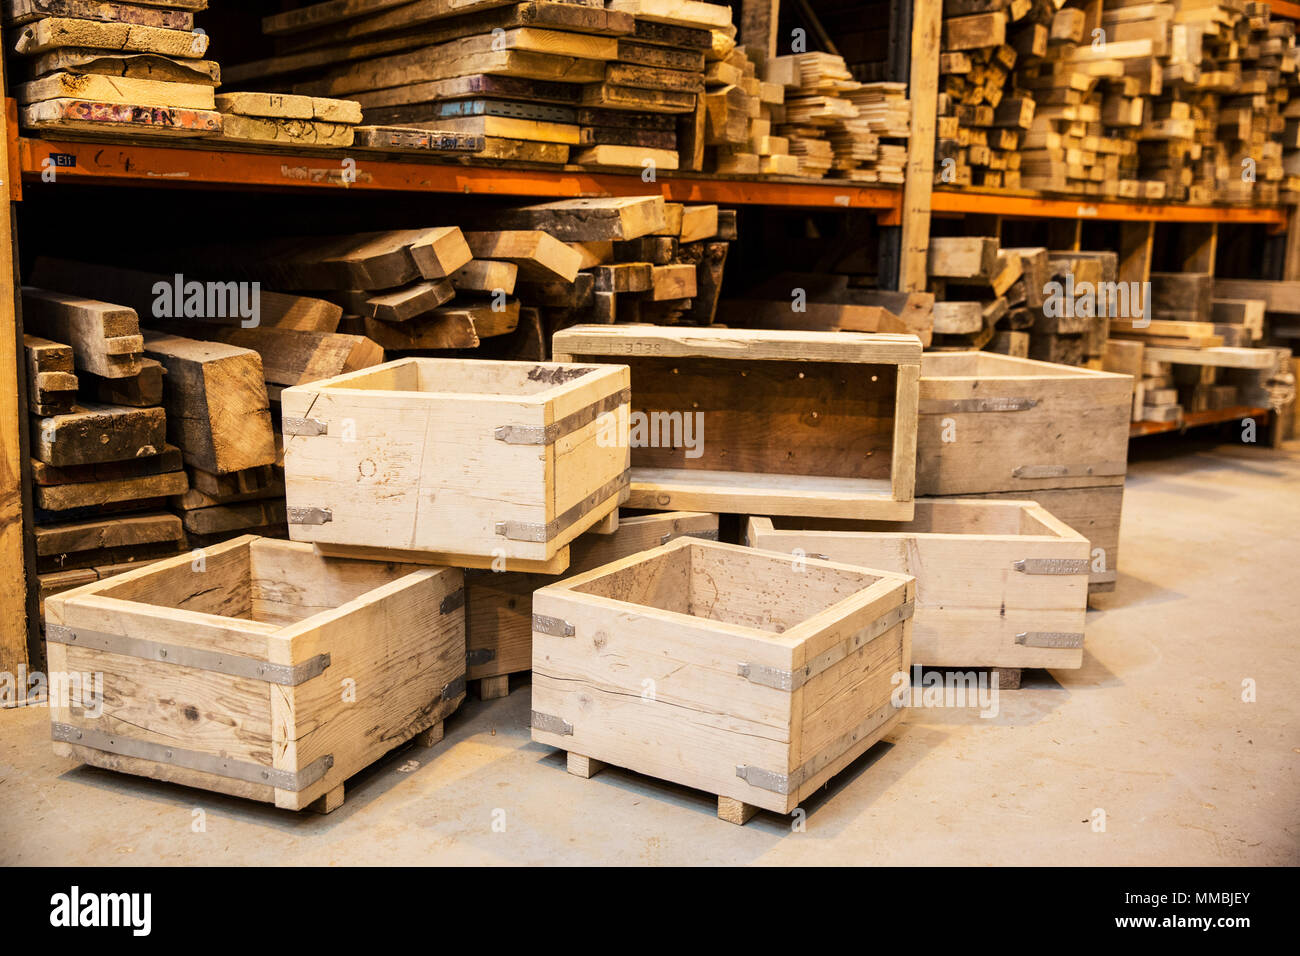 Shelves with wooden planks and a stack of wooden crates in a warehouse. - Stock Image